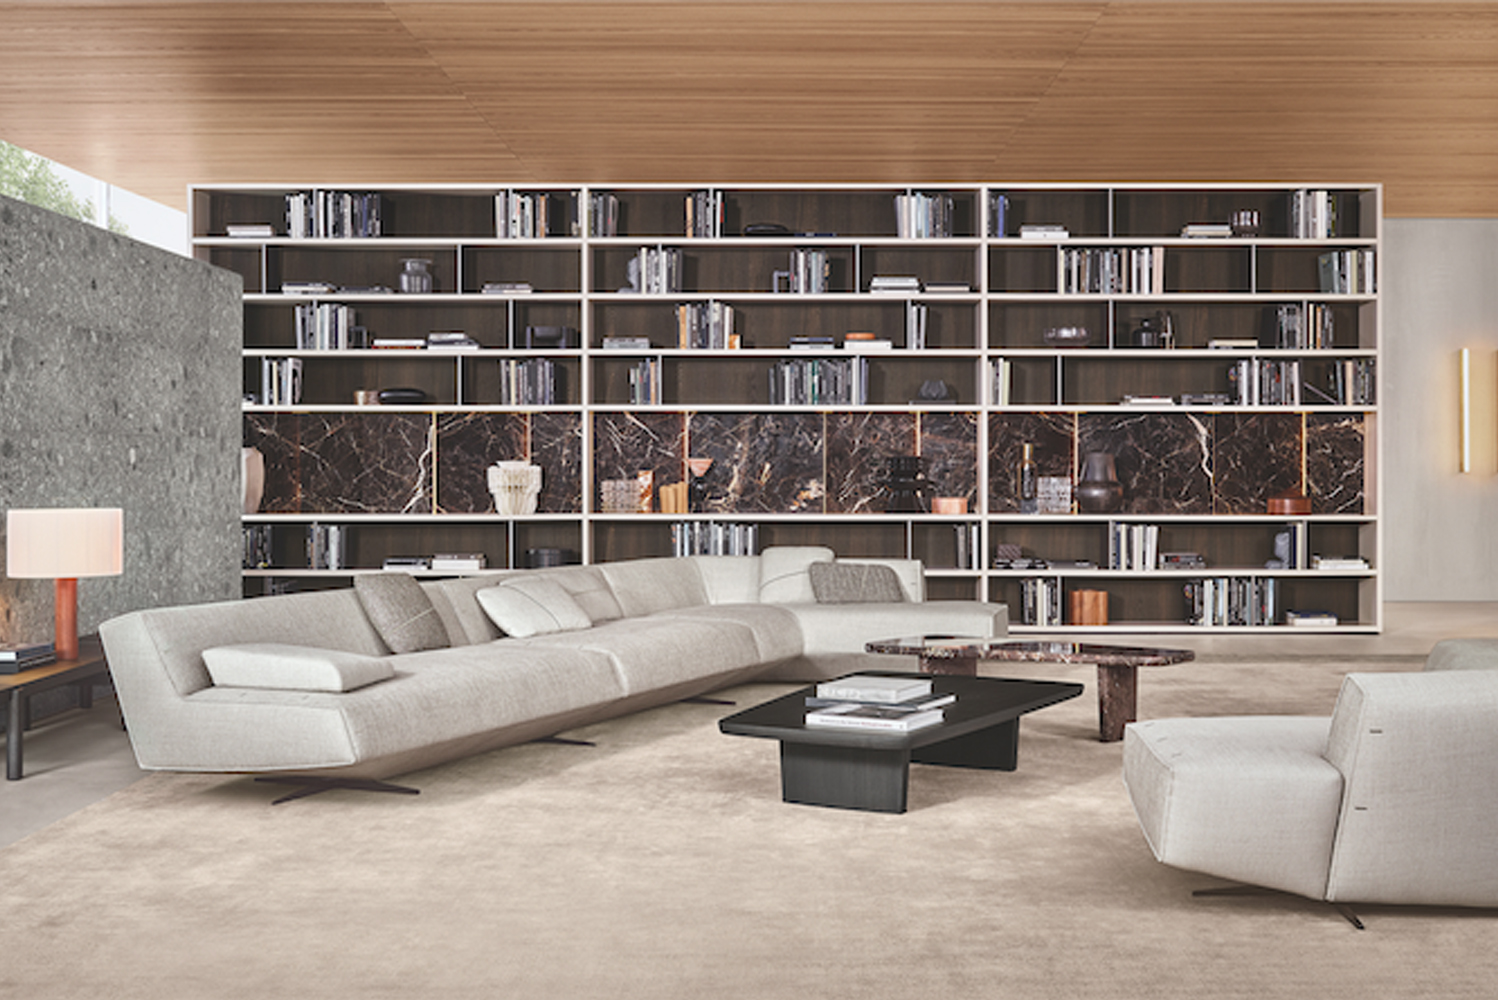 The collection includes the Sydney sofa, which has three-dimensional curves.